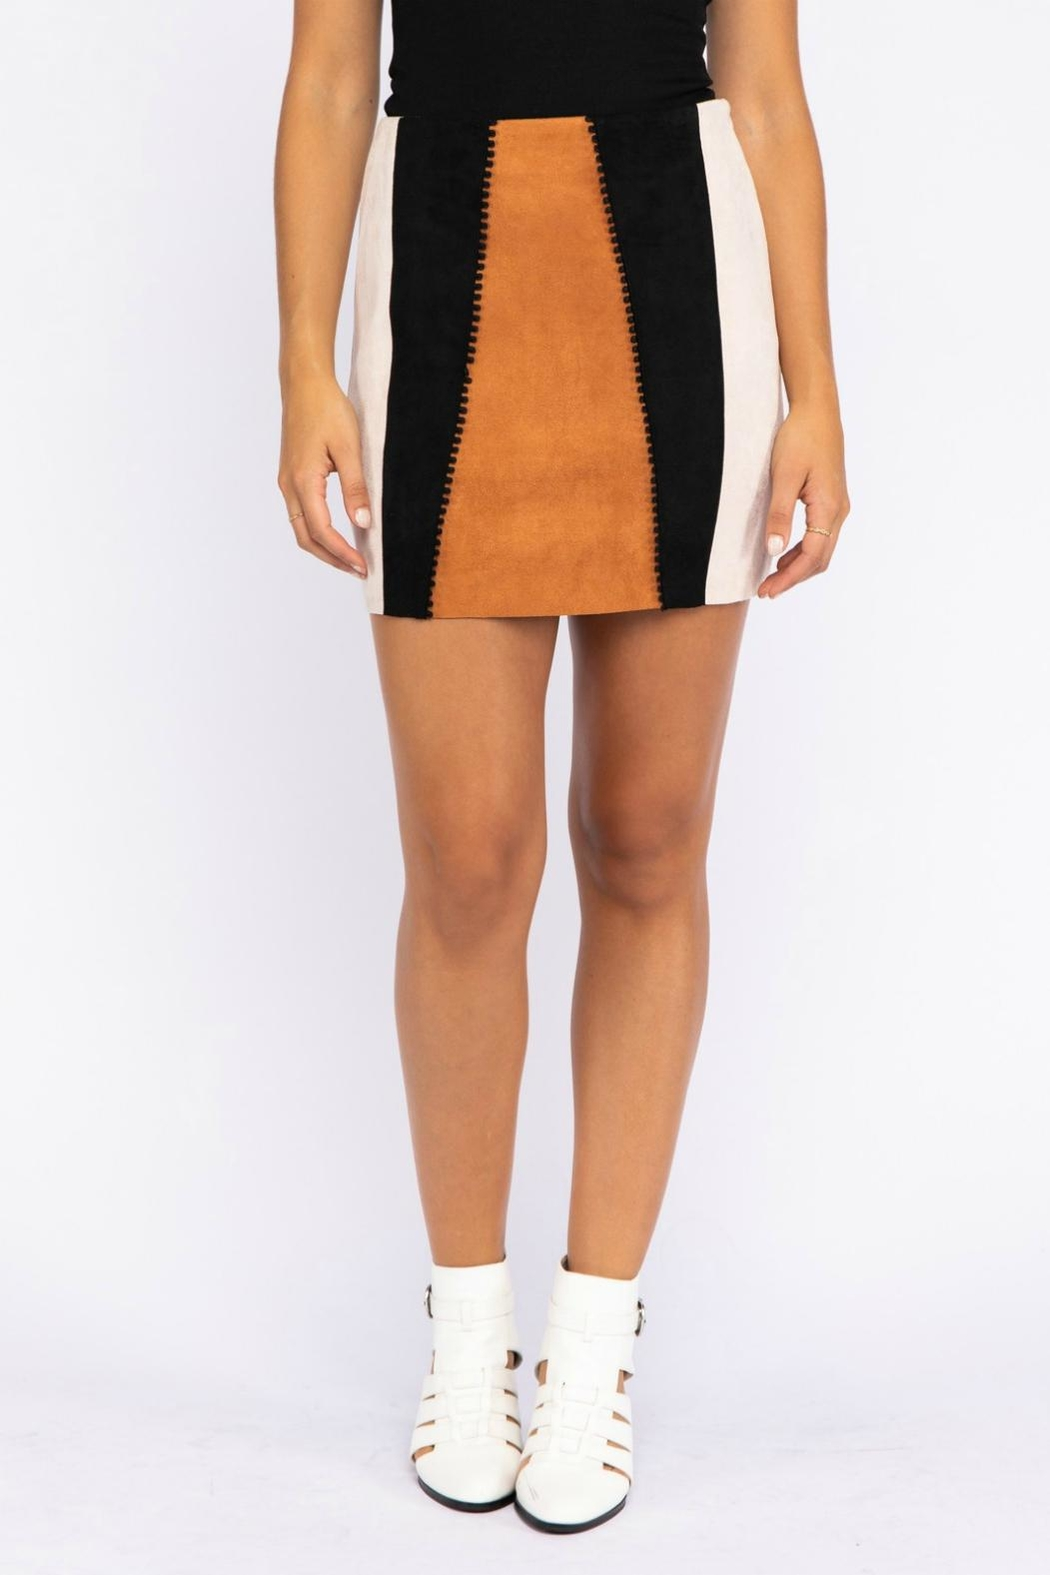 Pretty Little Things Suede Patchwork Skirt - Main Image